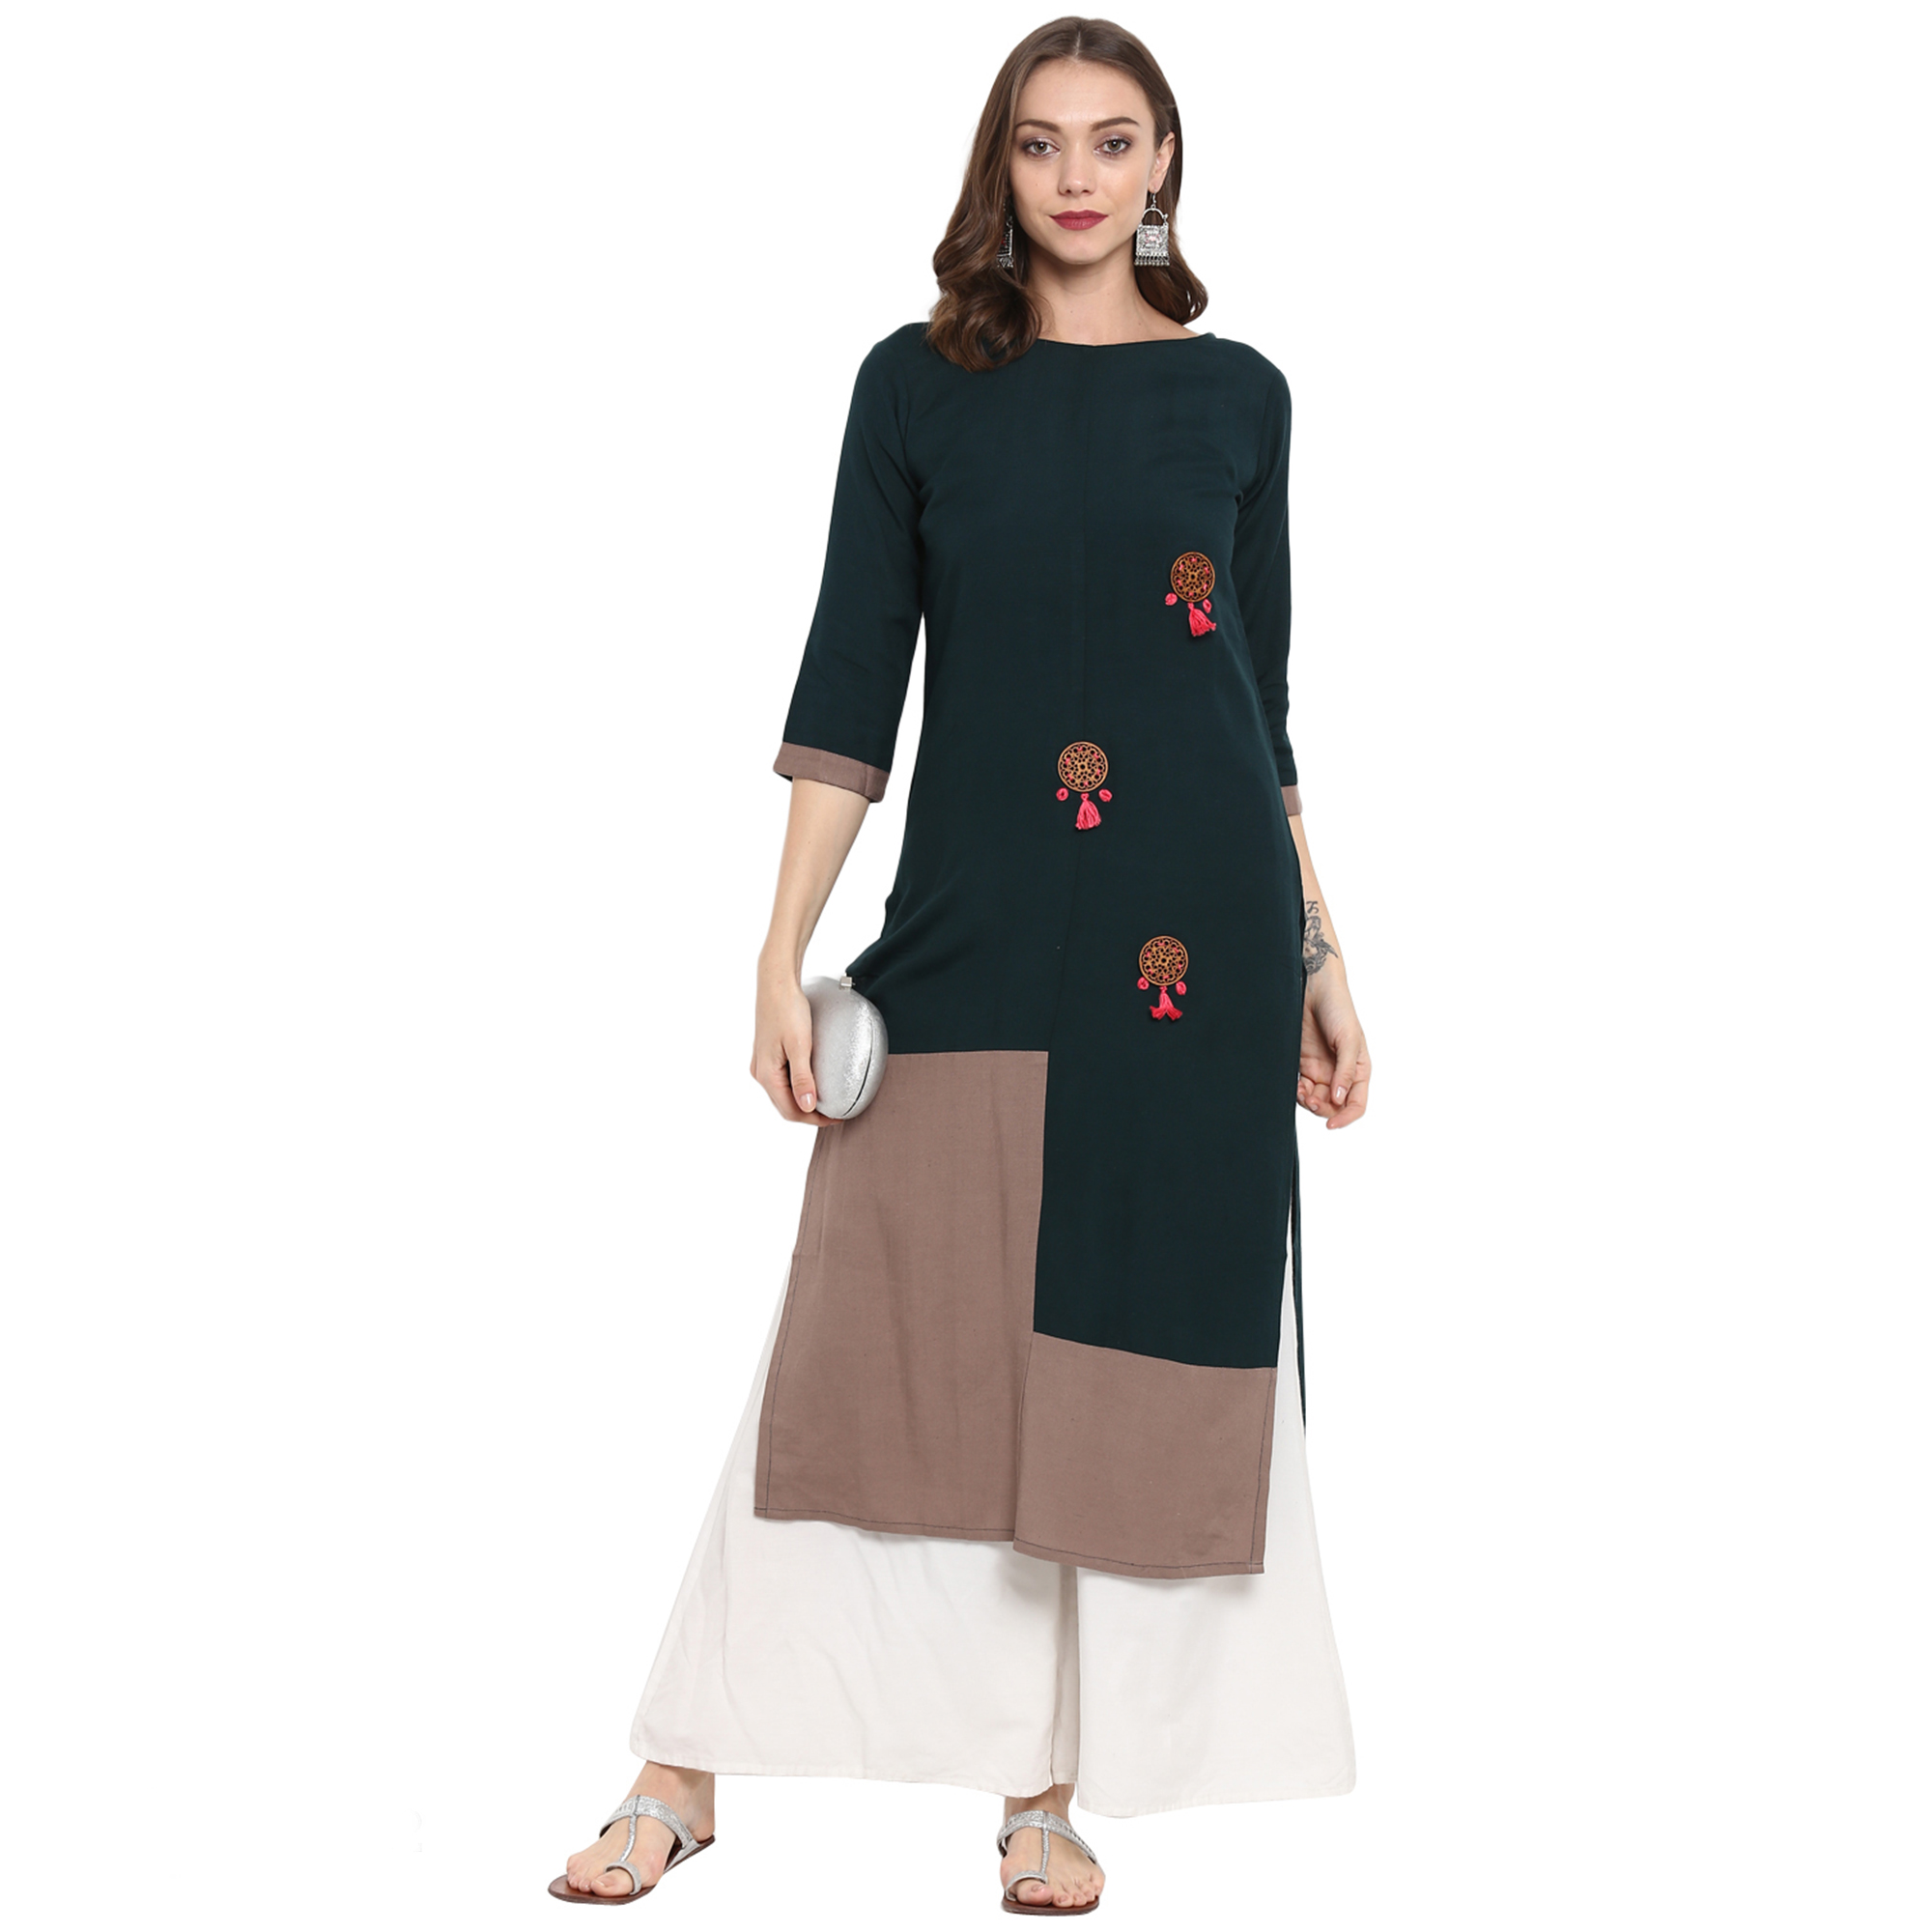 Engrossing Dark Teal Green Colored Casual Wear Long Cotton linen Kurti